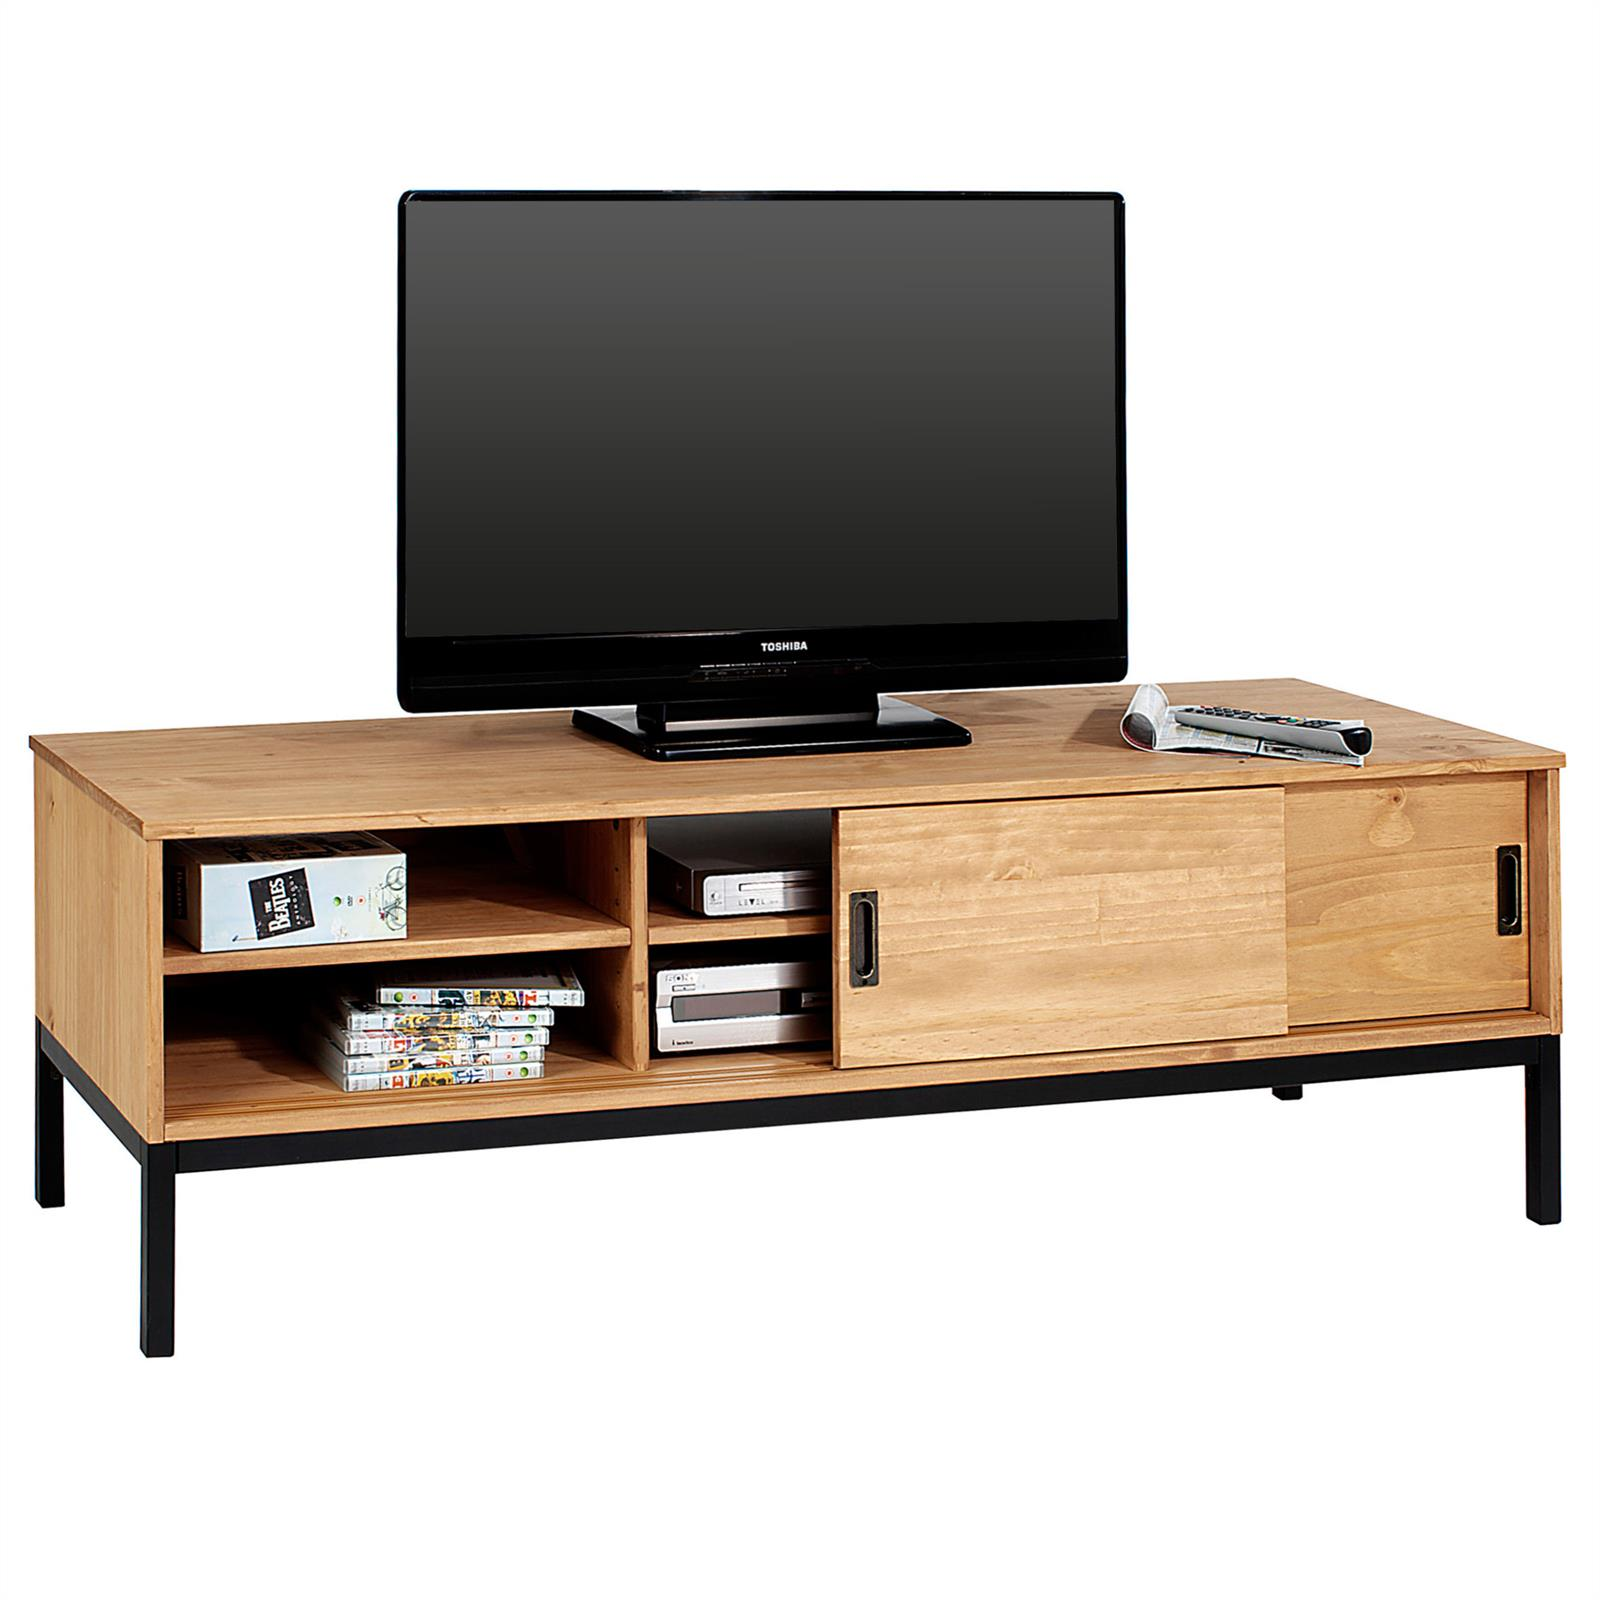 tv lowboard selma mit 2 schiebet ren gebeizt gewachst mobilia24. Black Bedroom Furniture Sets. Home Design Ideas